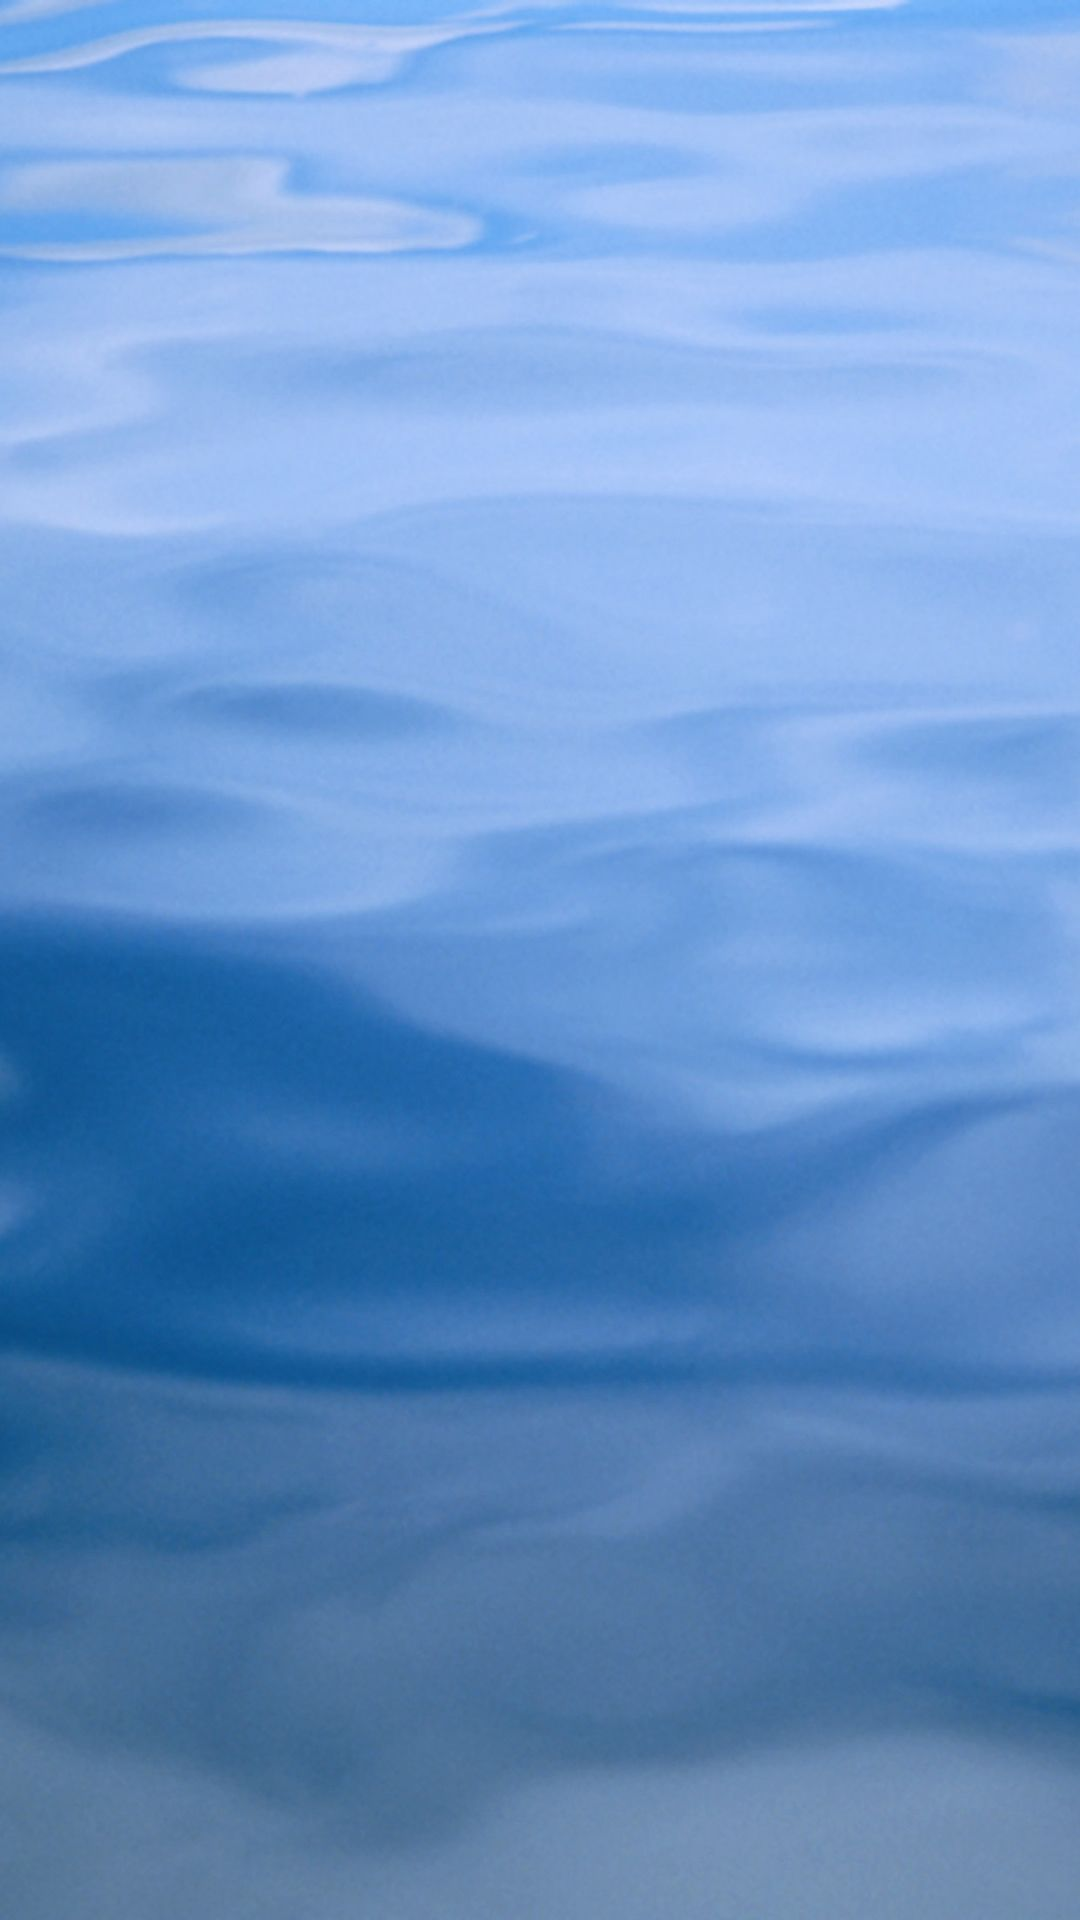 Calm Water Texture calm water blue wave pattern iphone 6 wallpaper | slicice